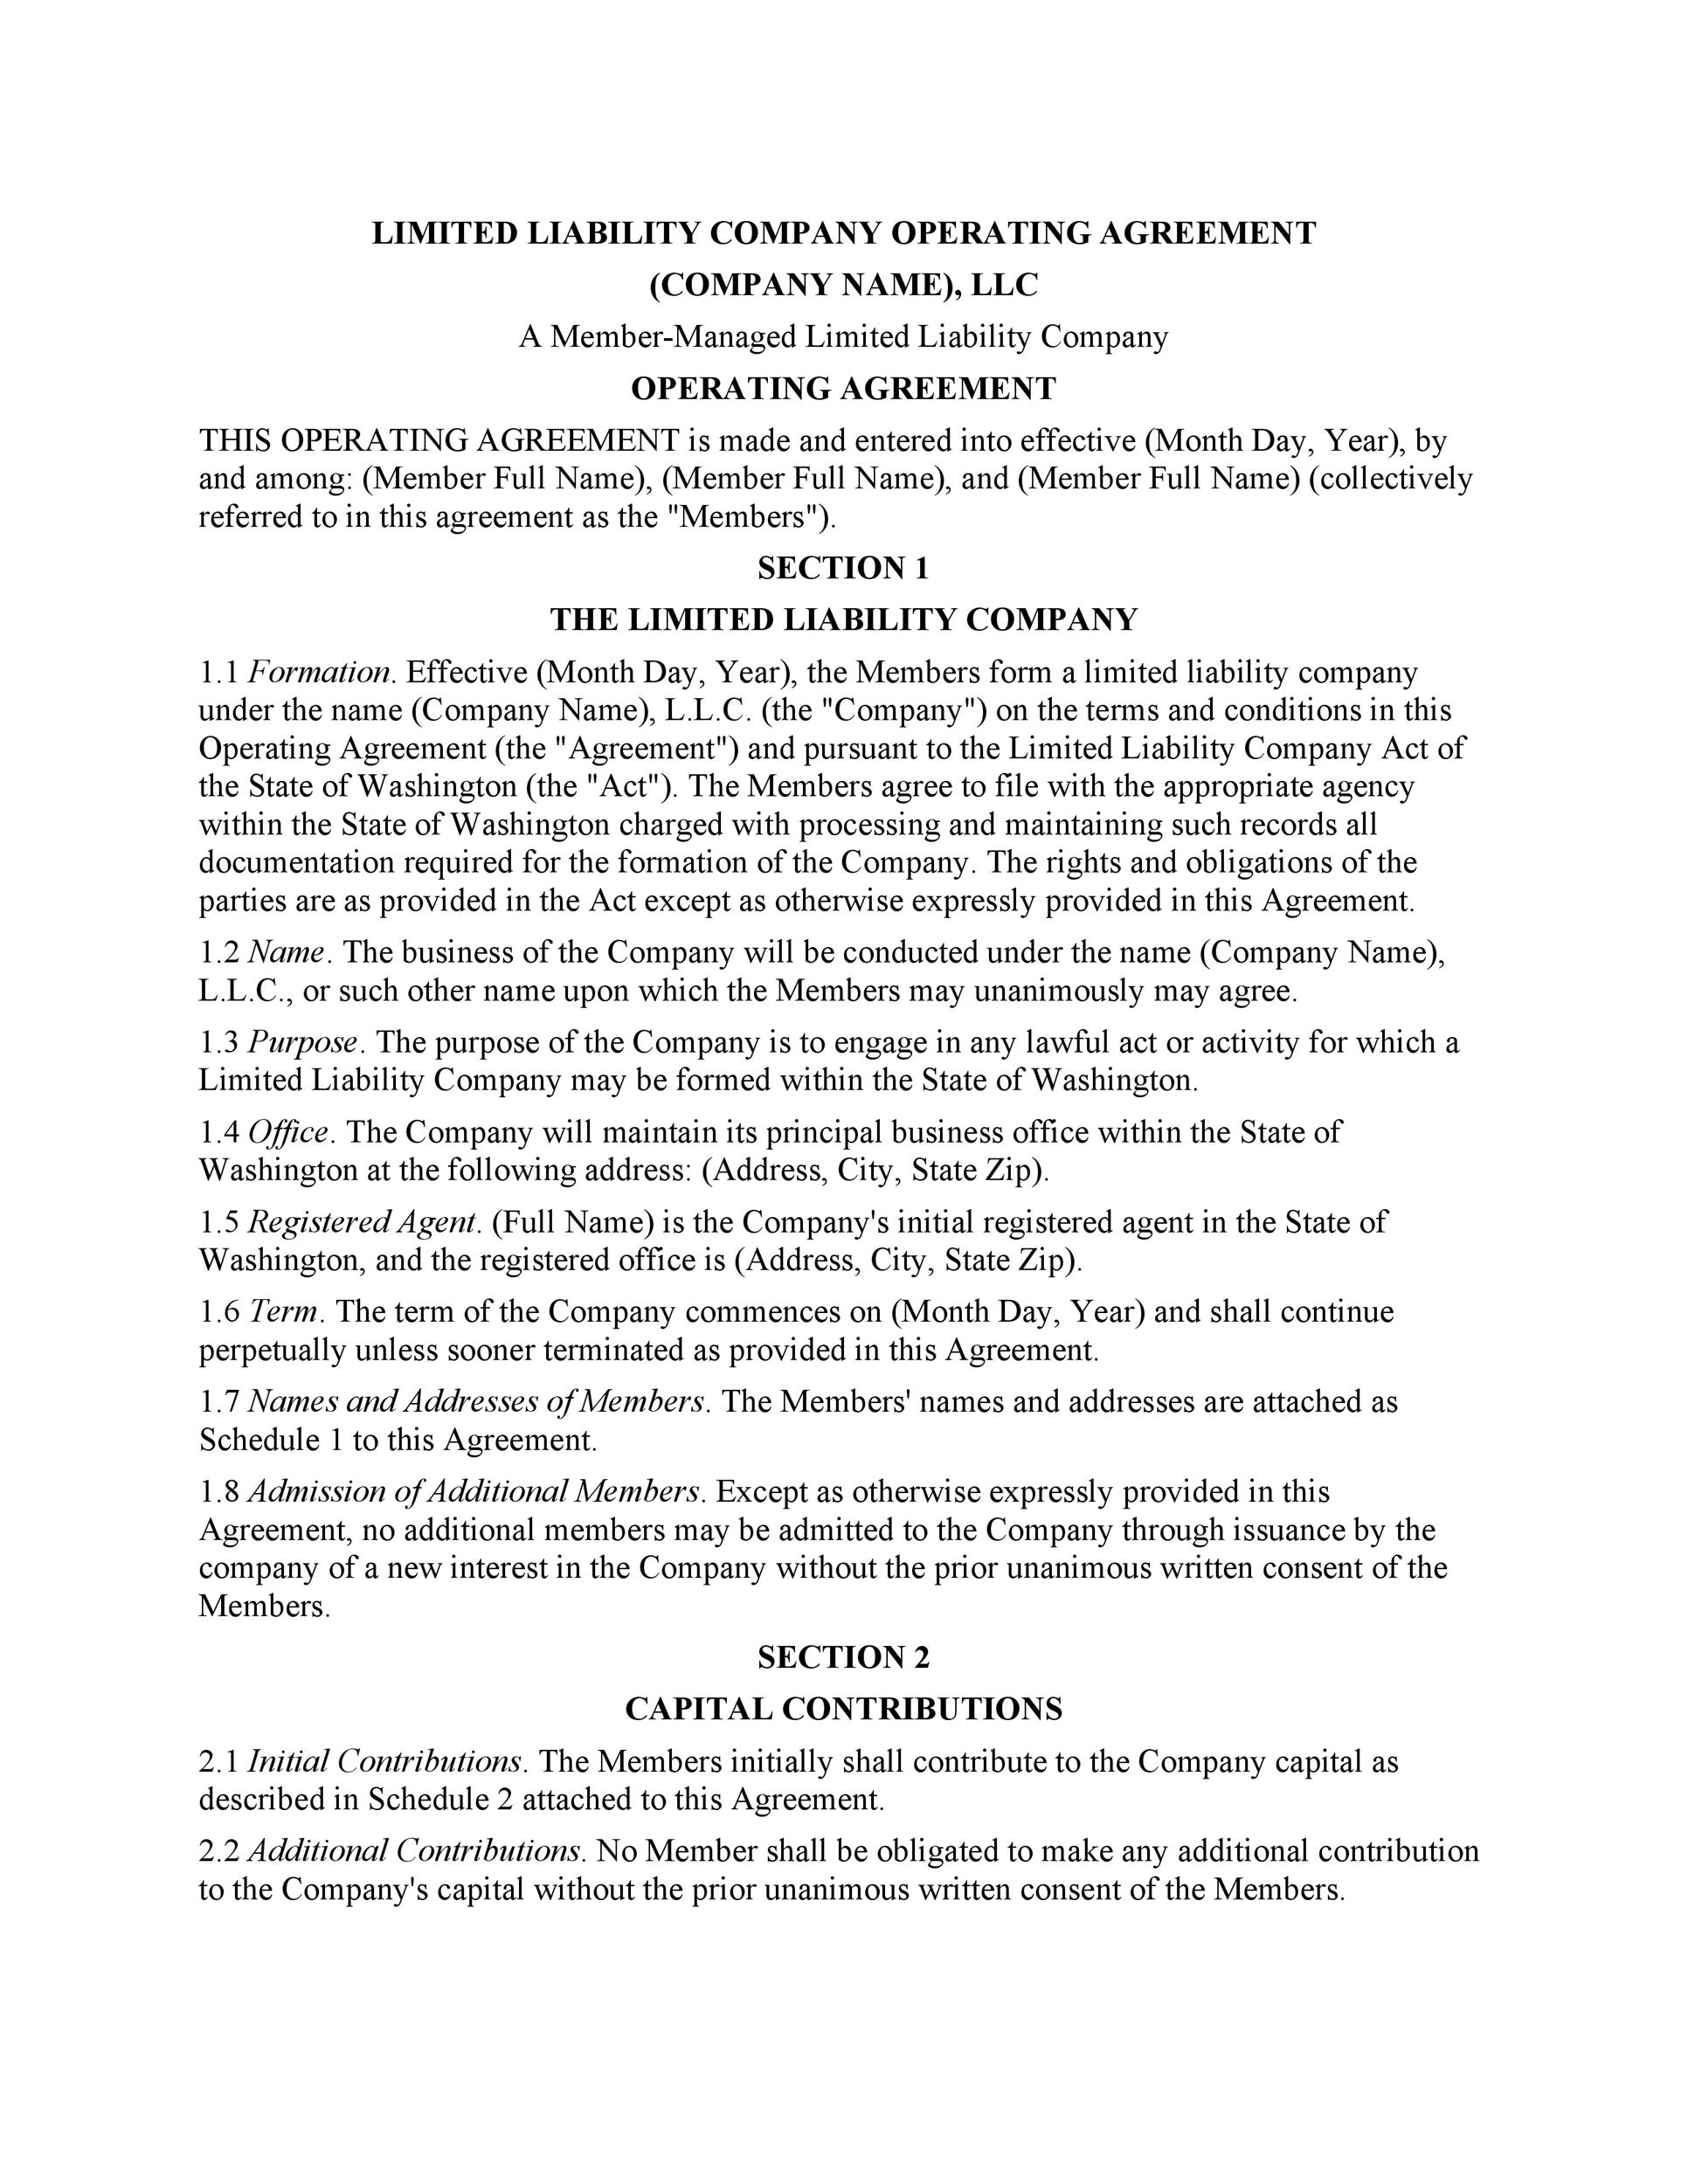 30 professional llc operating agreement templates for Operation agreement llc template